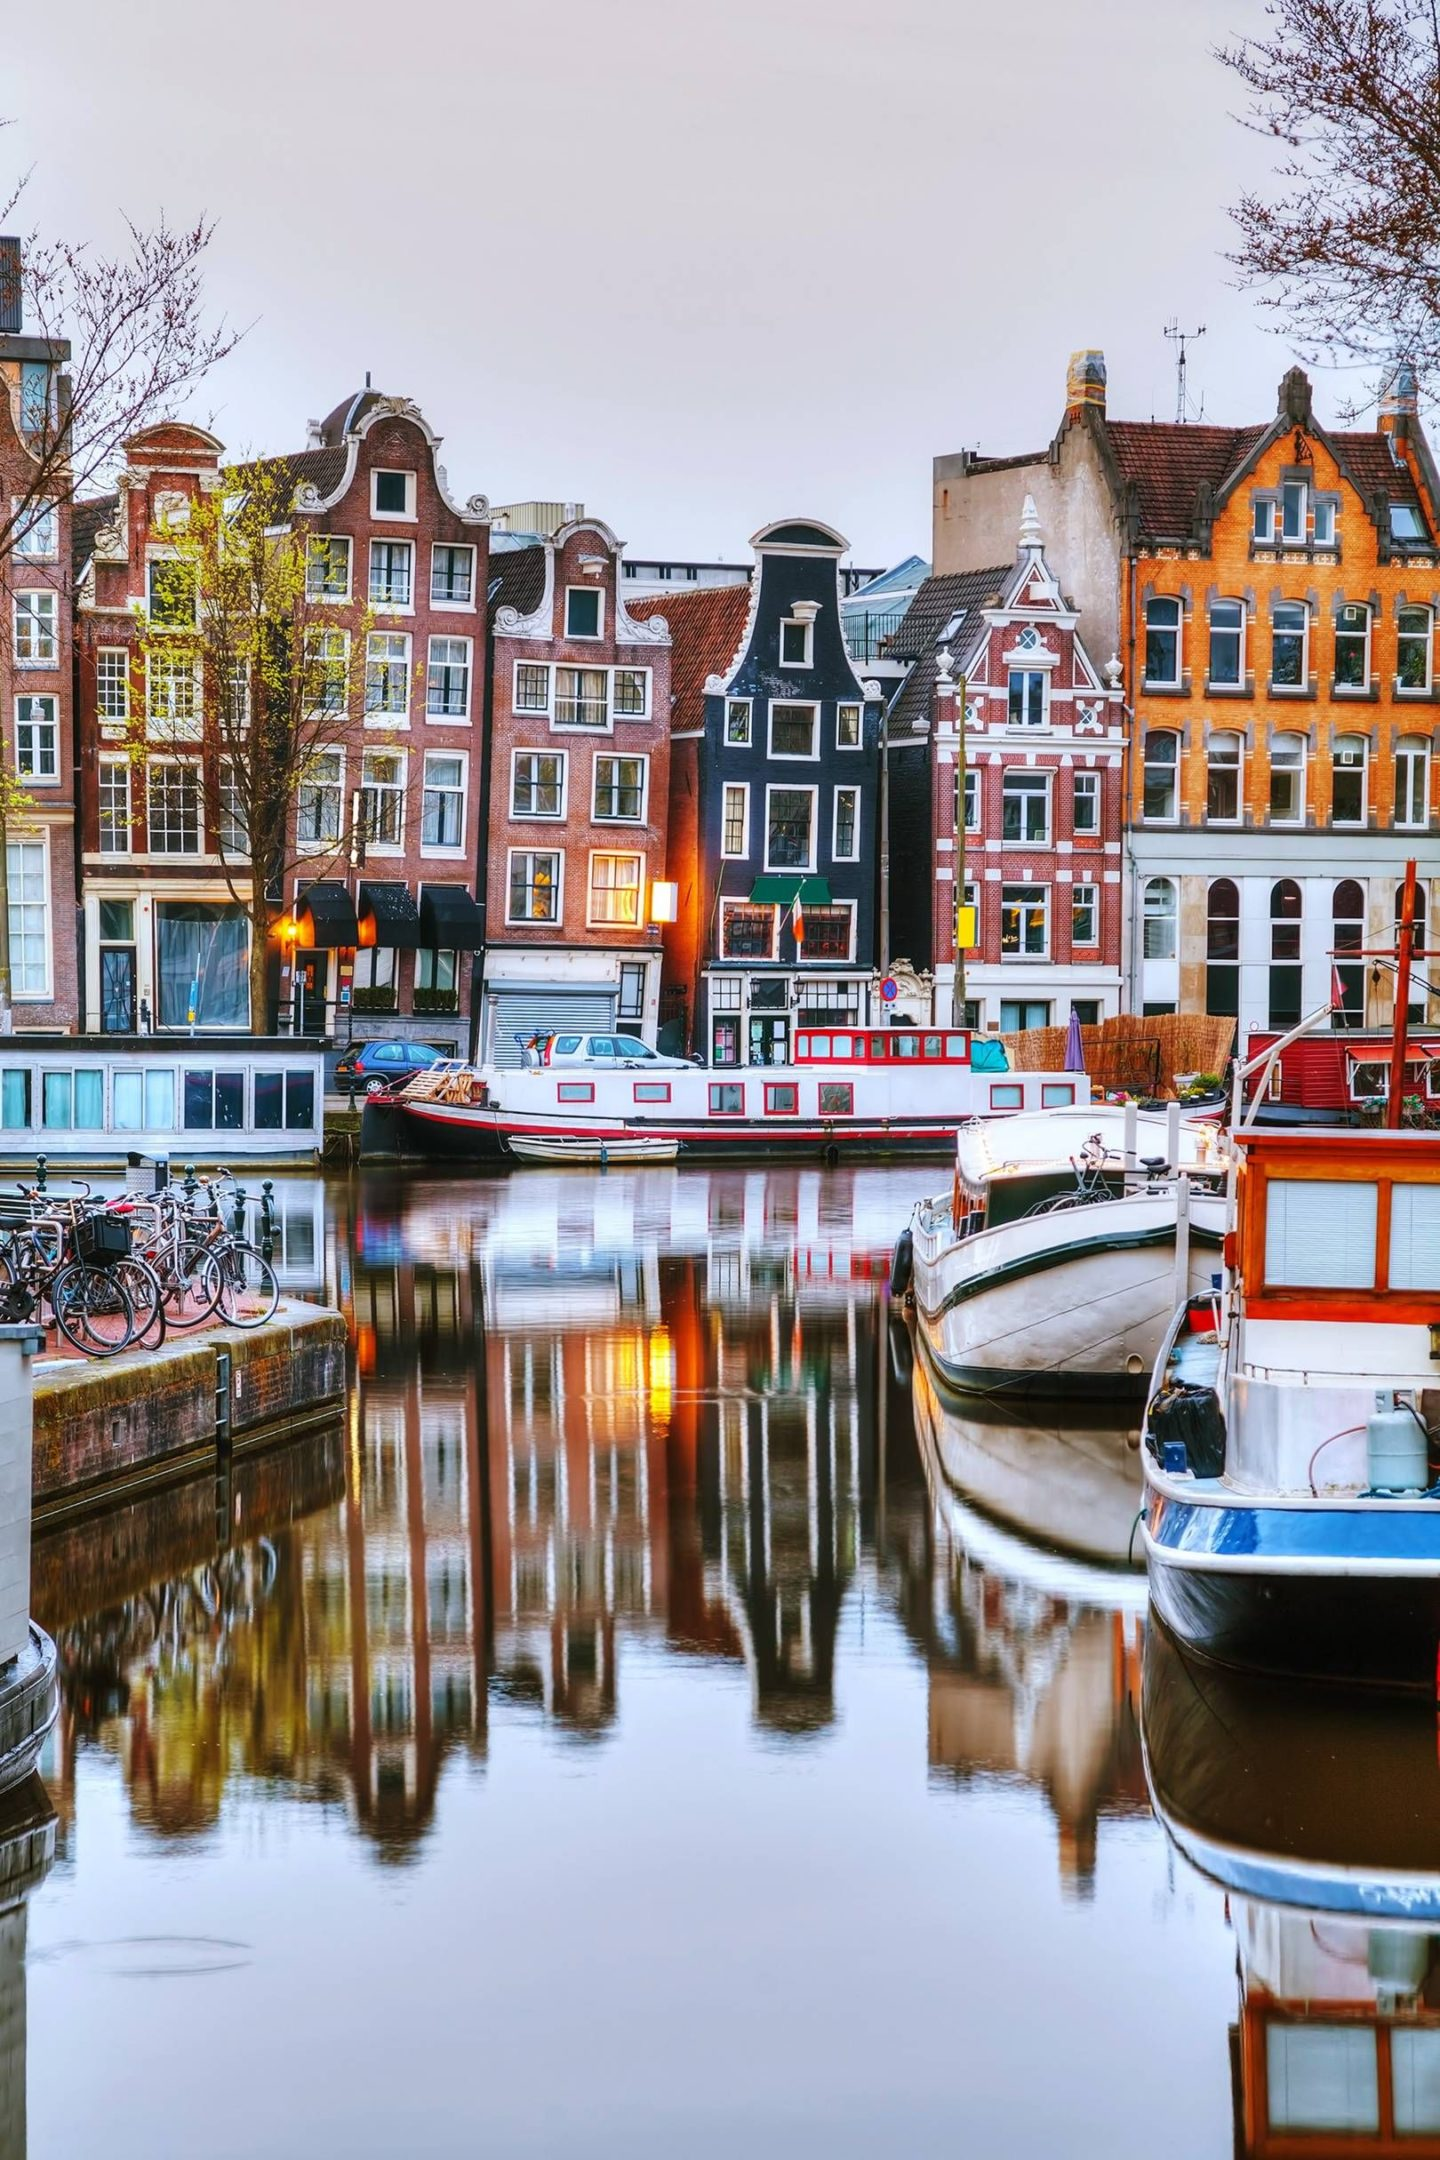 Amsterdams colourful canals make this a city worthy of an instagram post or two